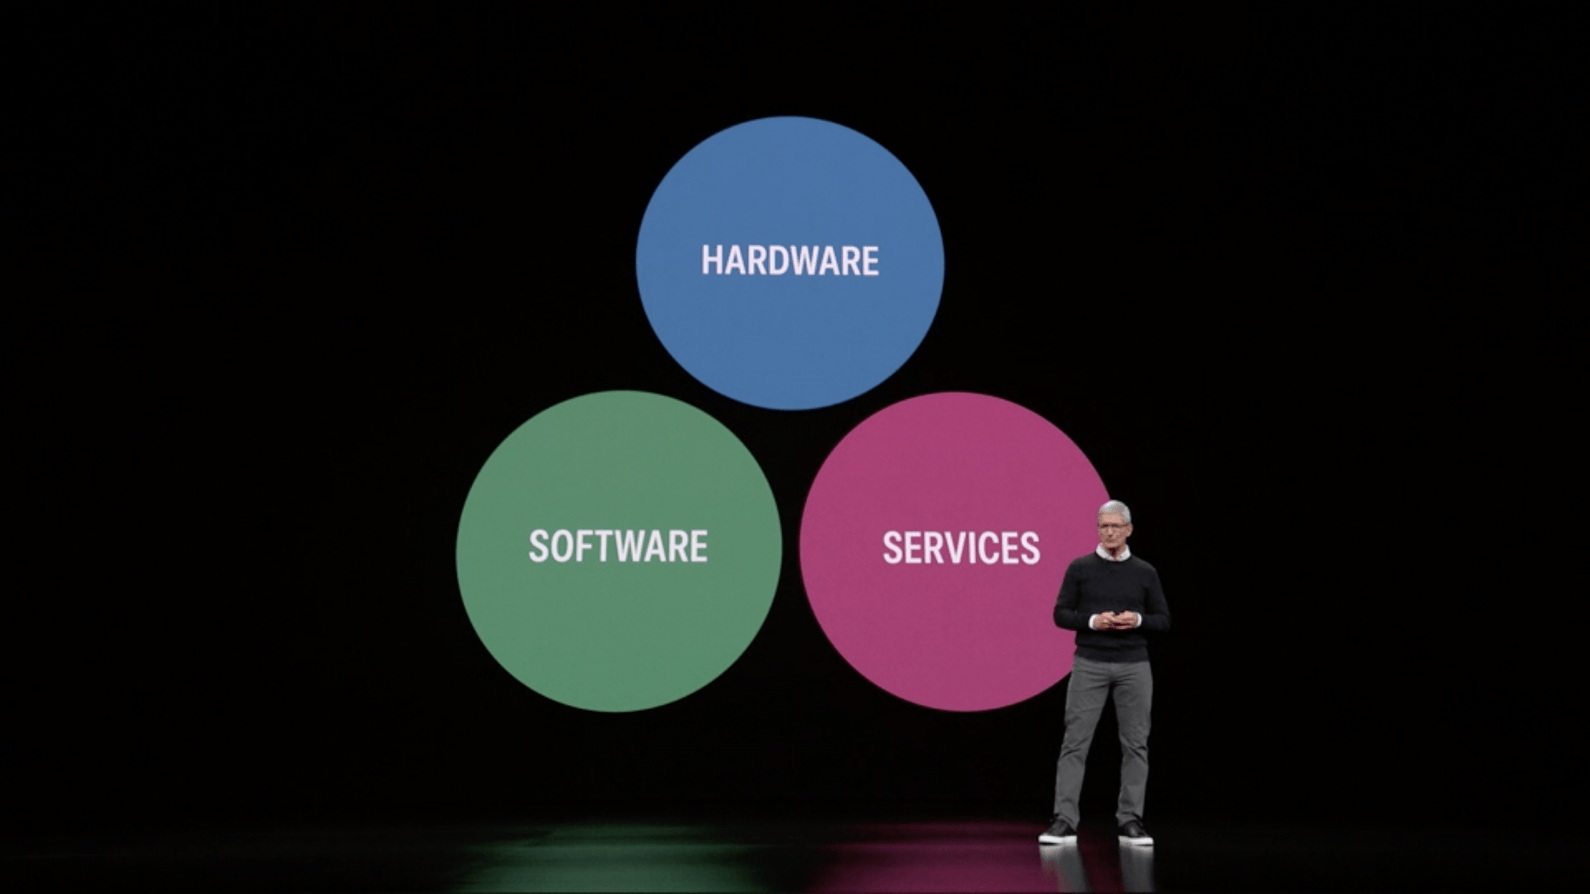 apple offers services